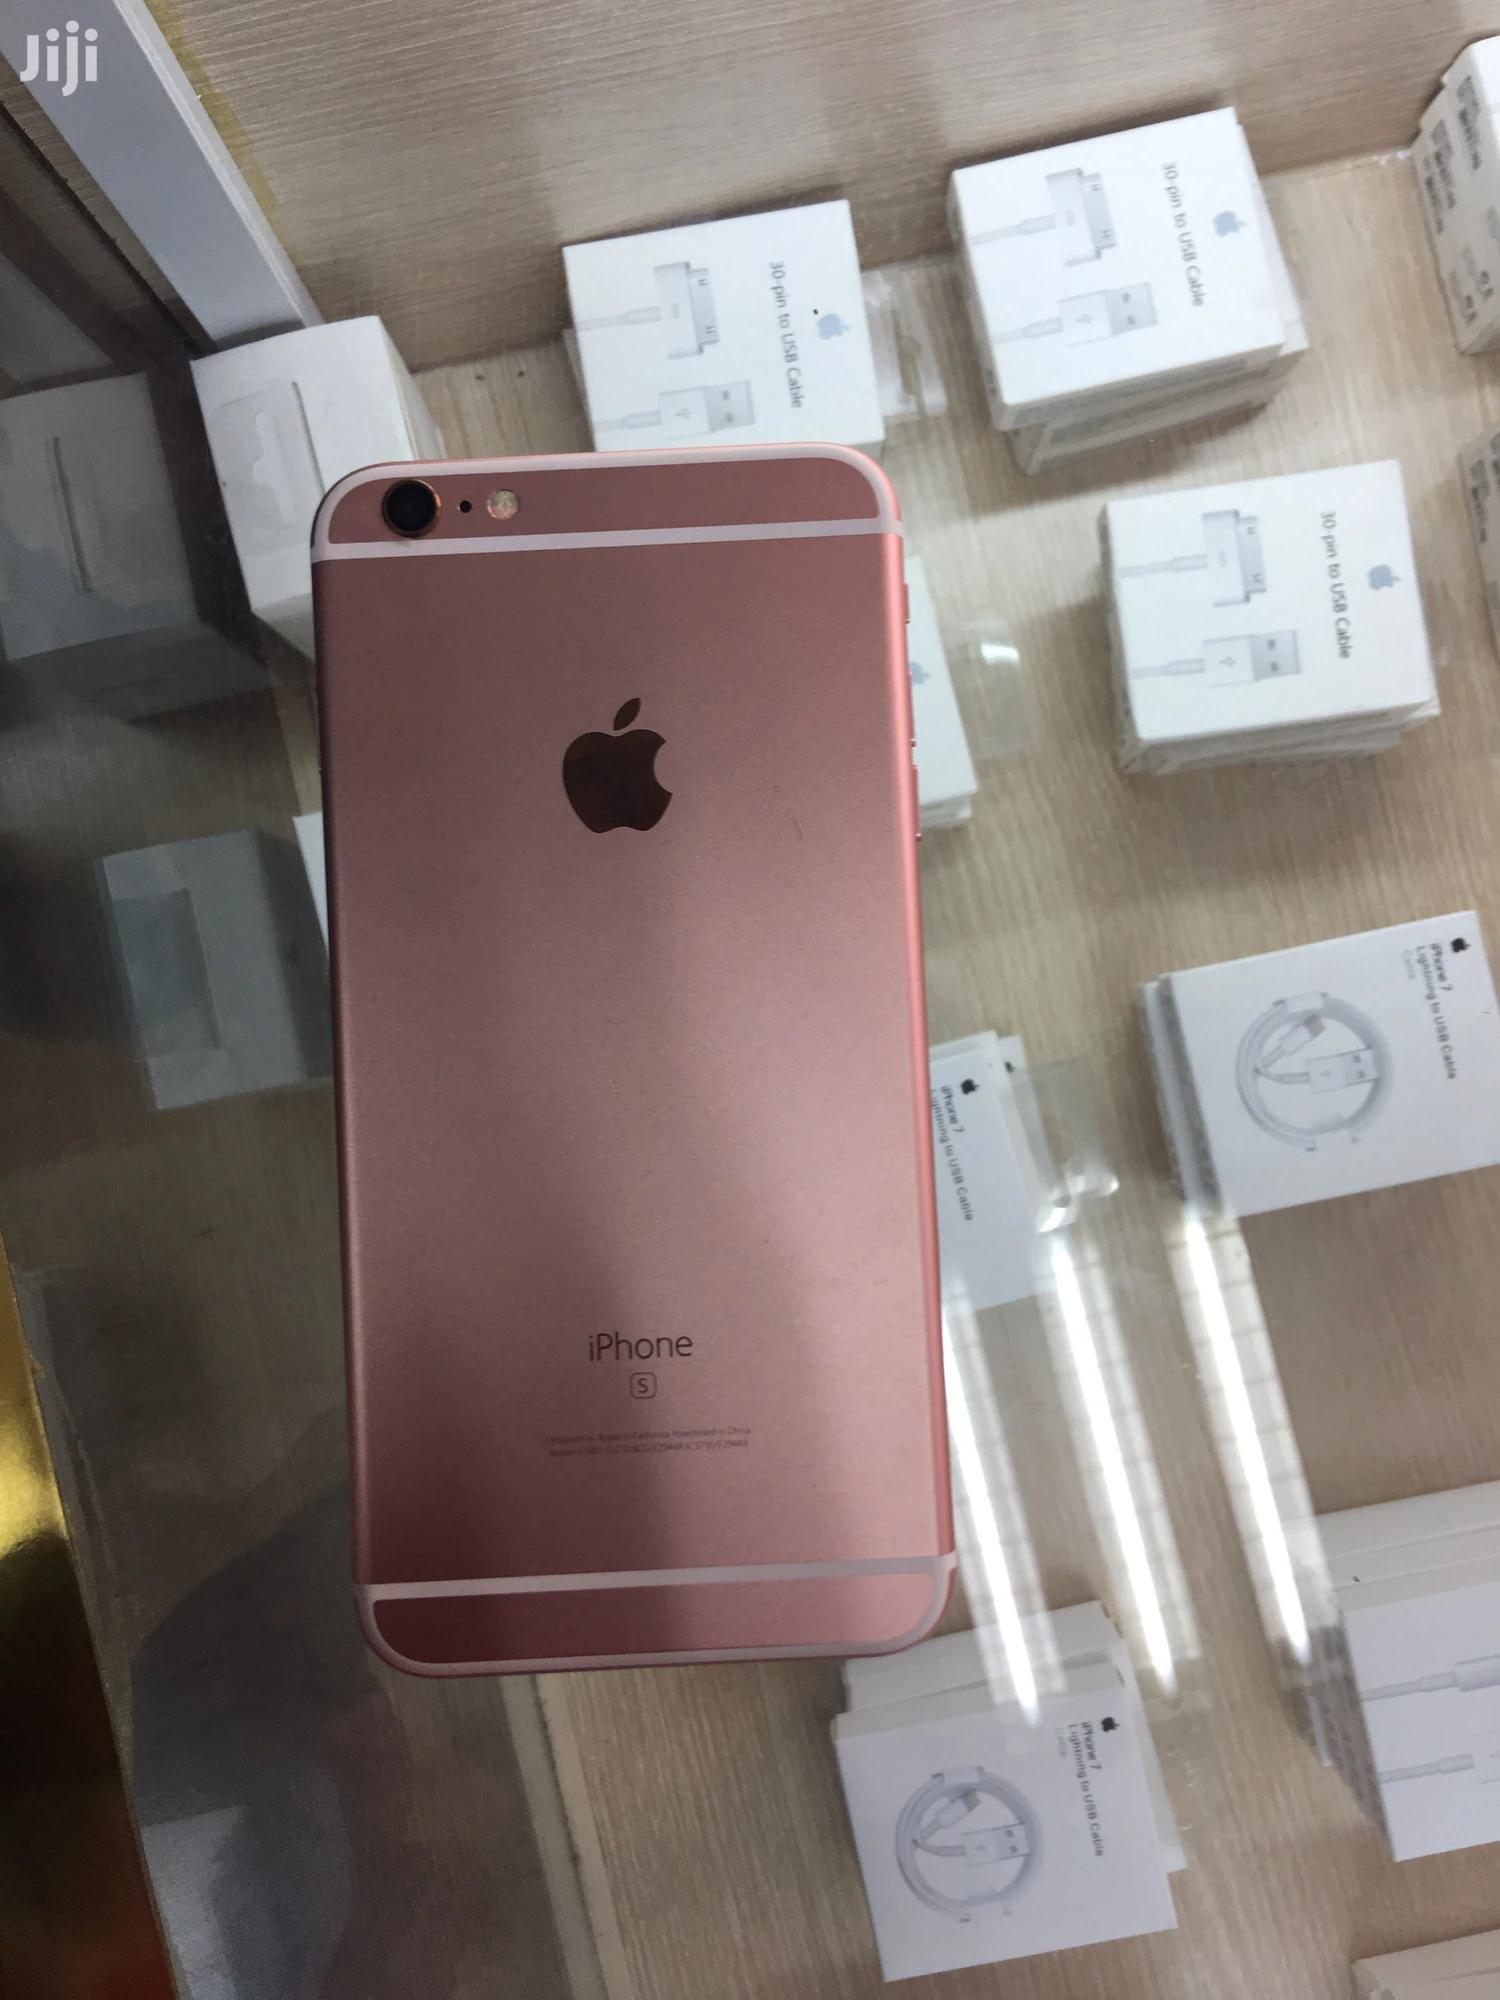 Apple iPhone 6s Plus 64 GB Pink